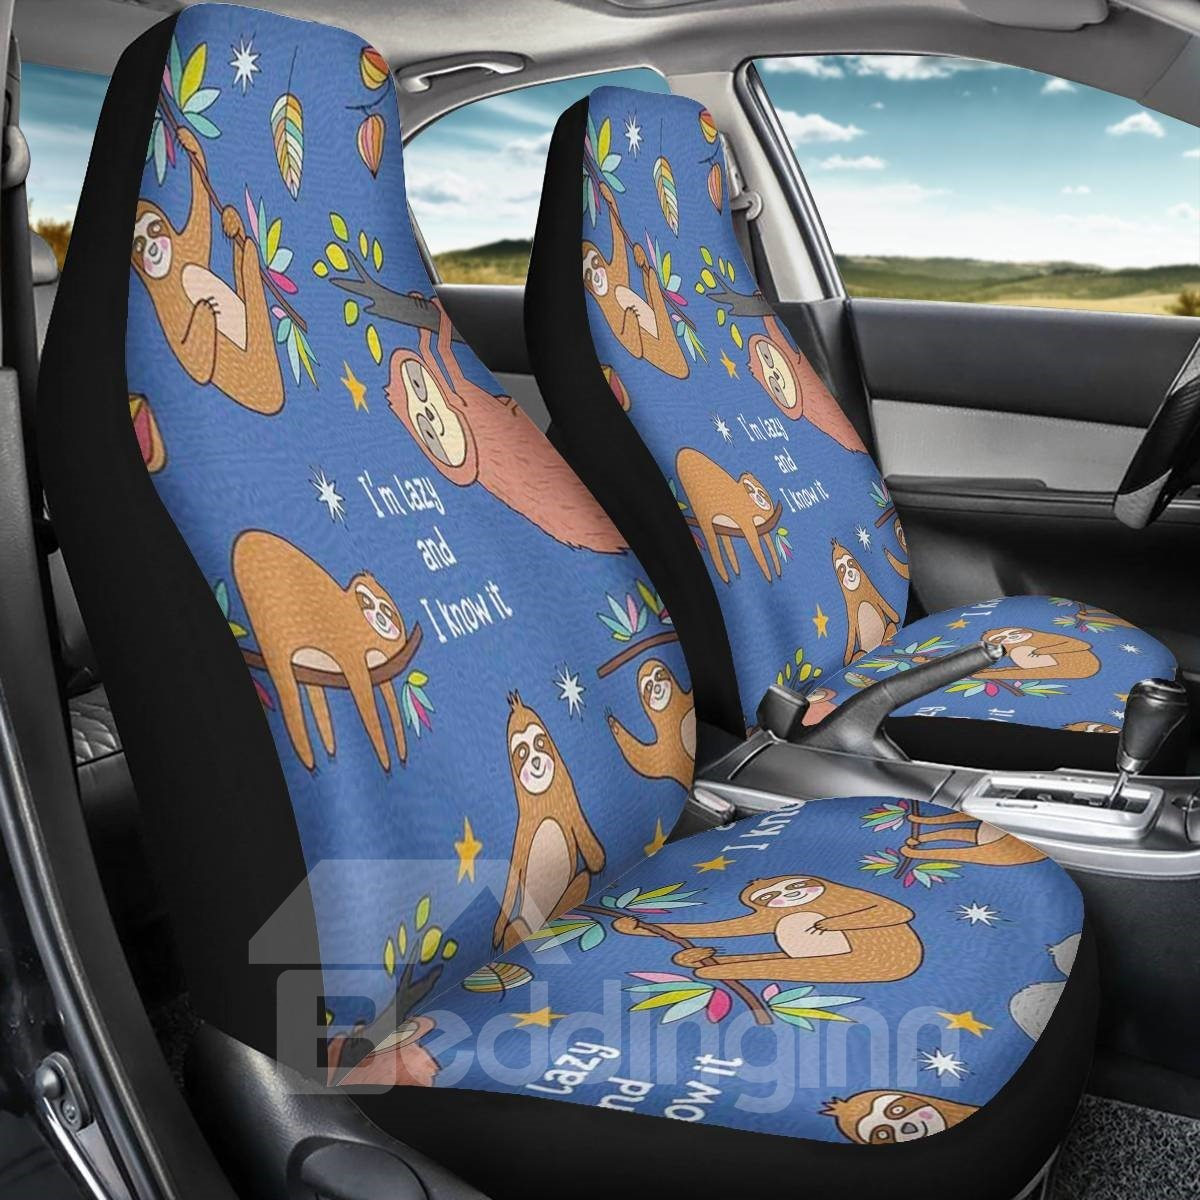 2PCS Front Seat Covers Sloth Print Pattern Universal Fit Seat Covers Will Stretch to Fit Most Car and SUV Bucket Style Seats